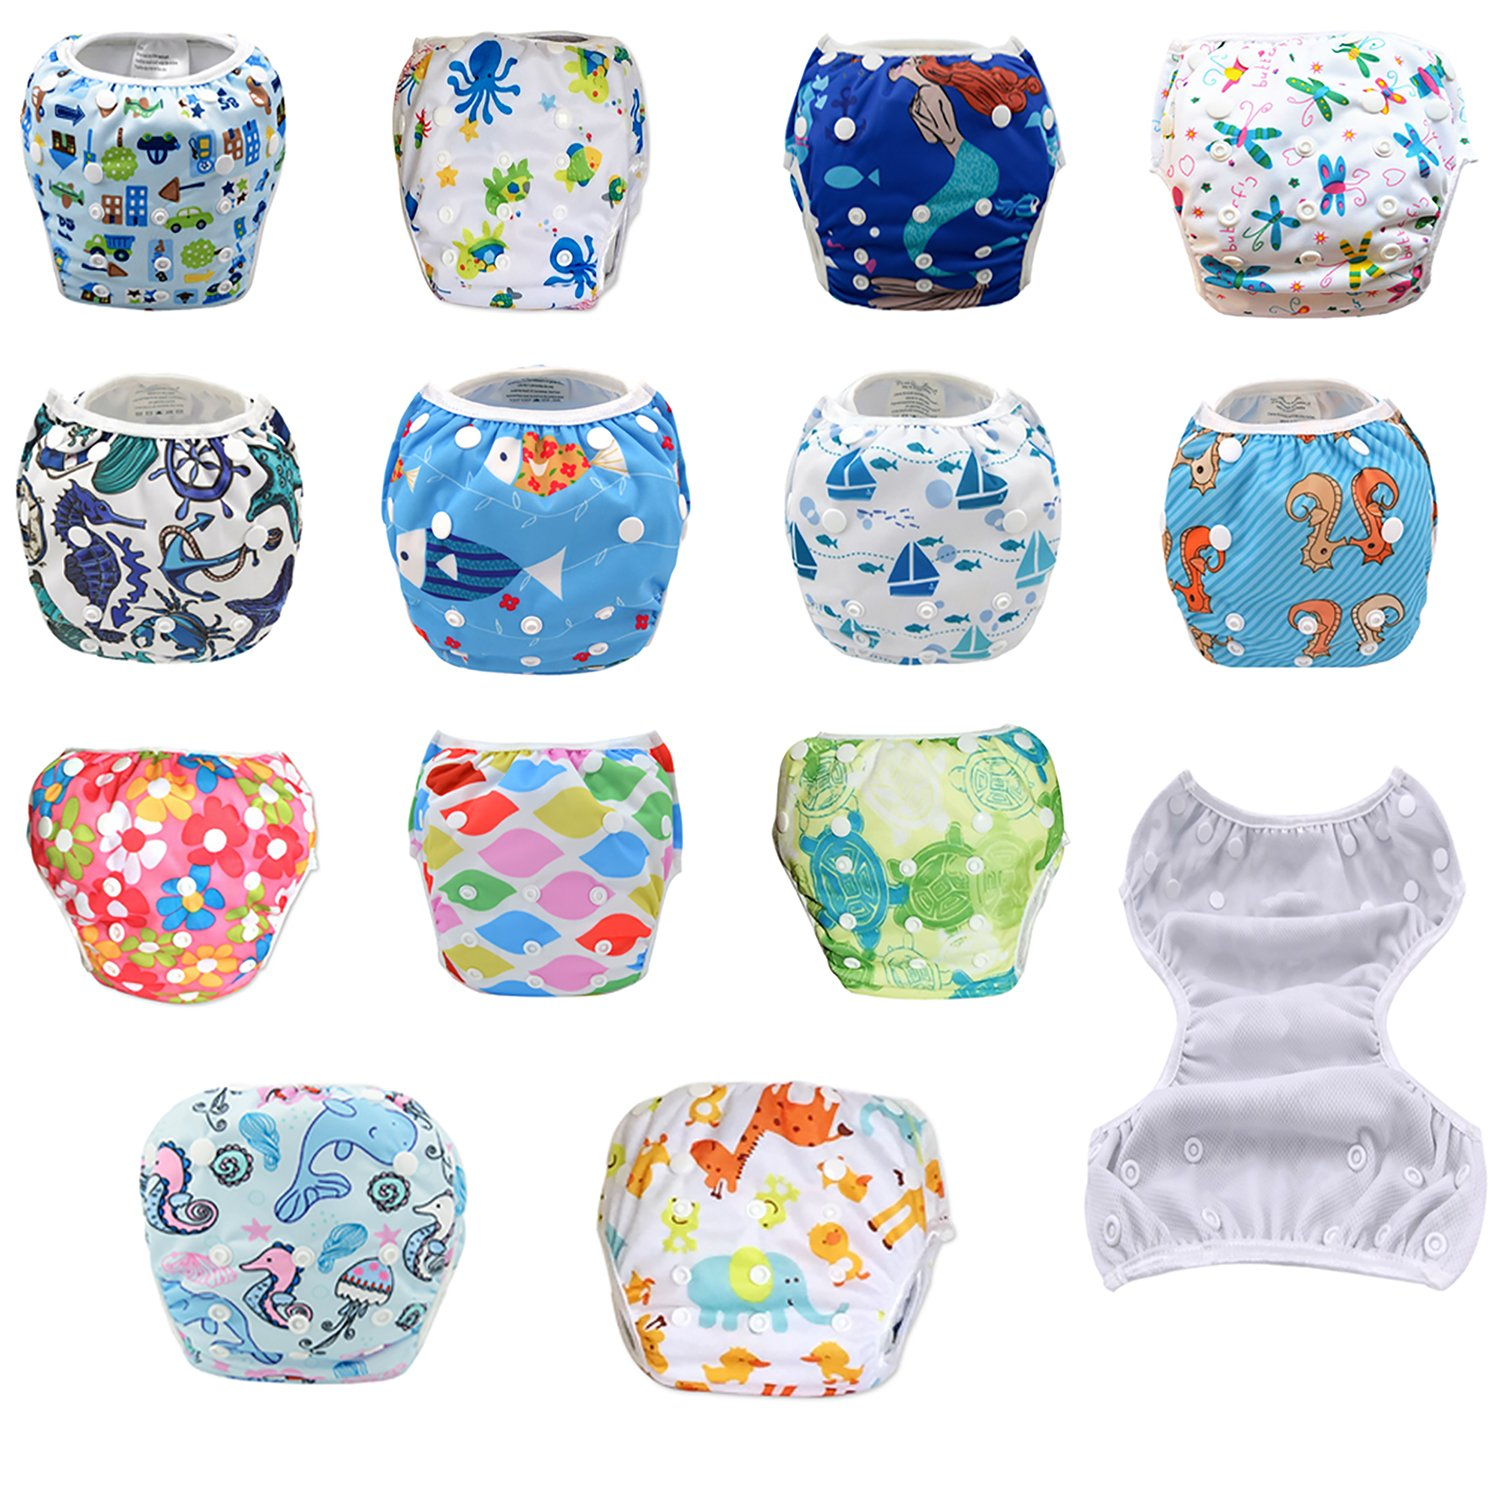 Animals Leakproof Washable Reusable Swim Diapers for Kids 0 to 2 Years